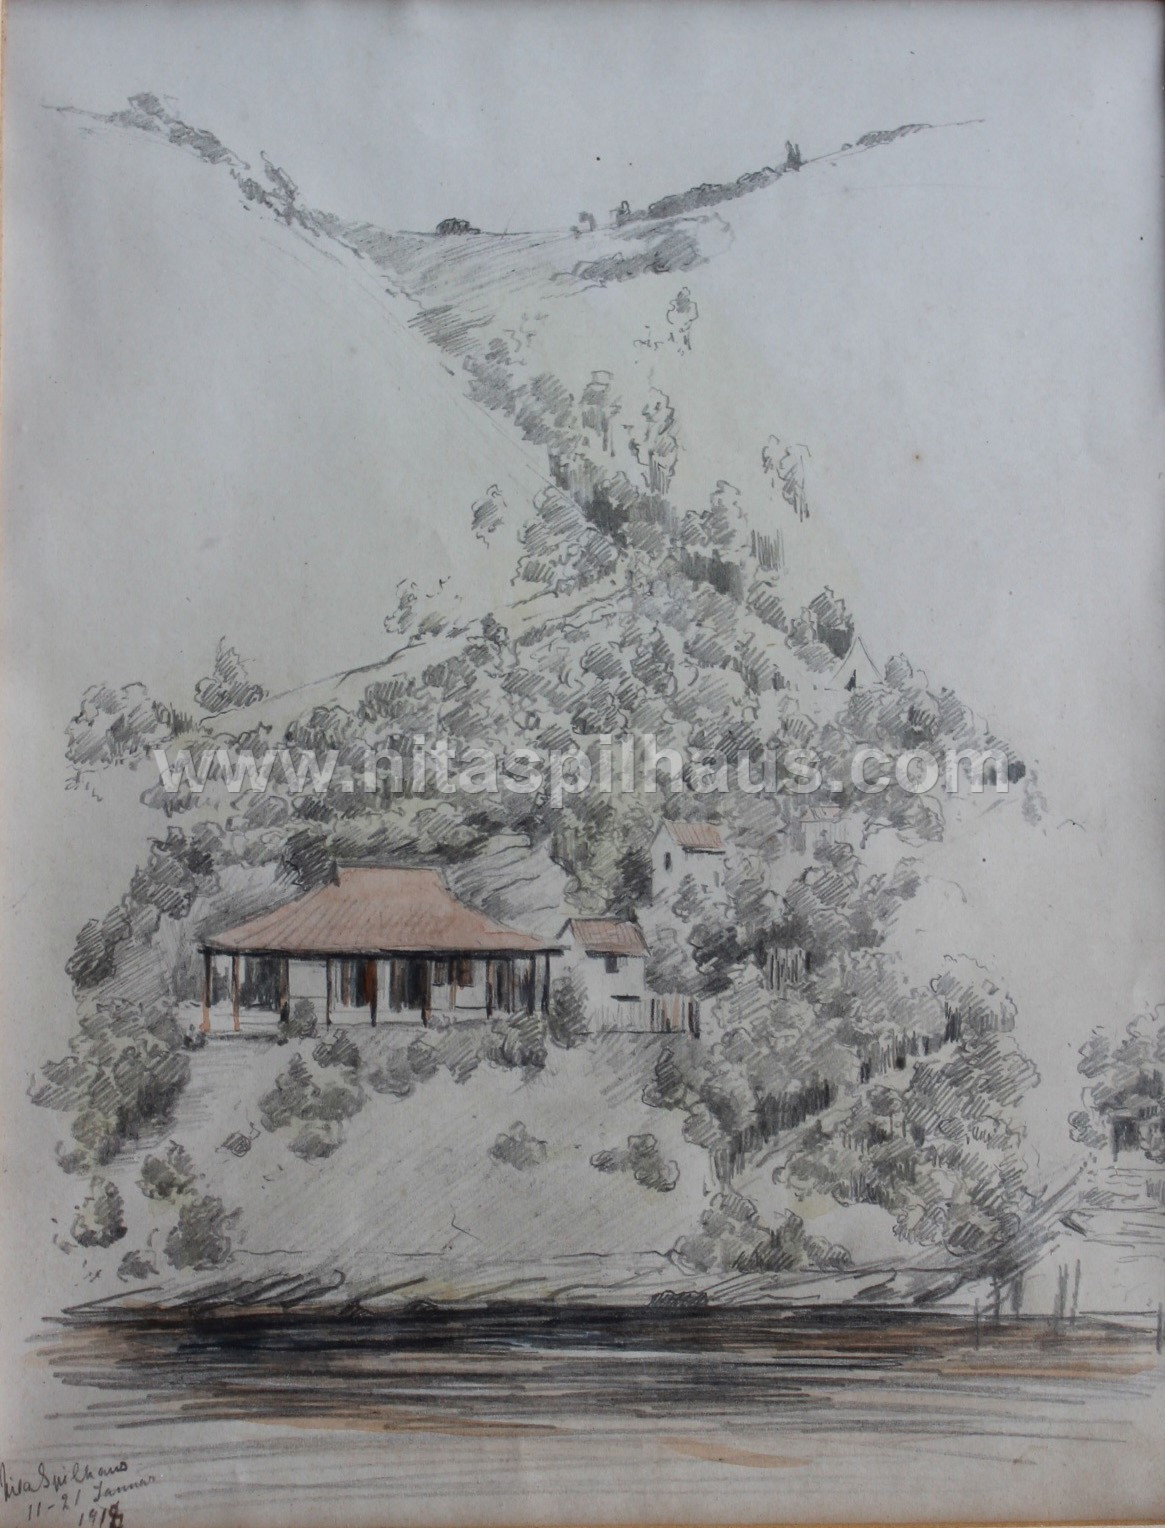 The beach-house at Kaaiman's River, Pencil and watercolour on paper, 21 x 17 cm, Collector 49